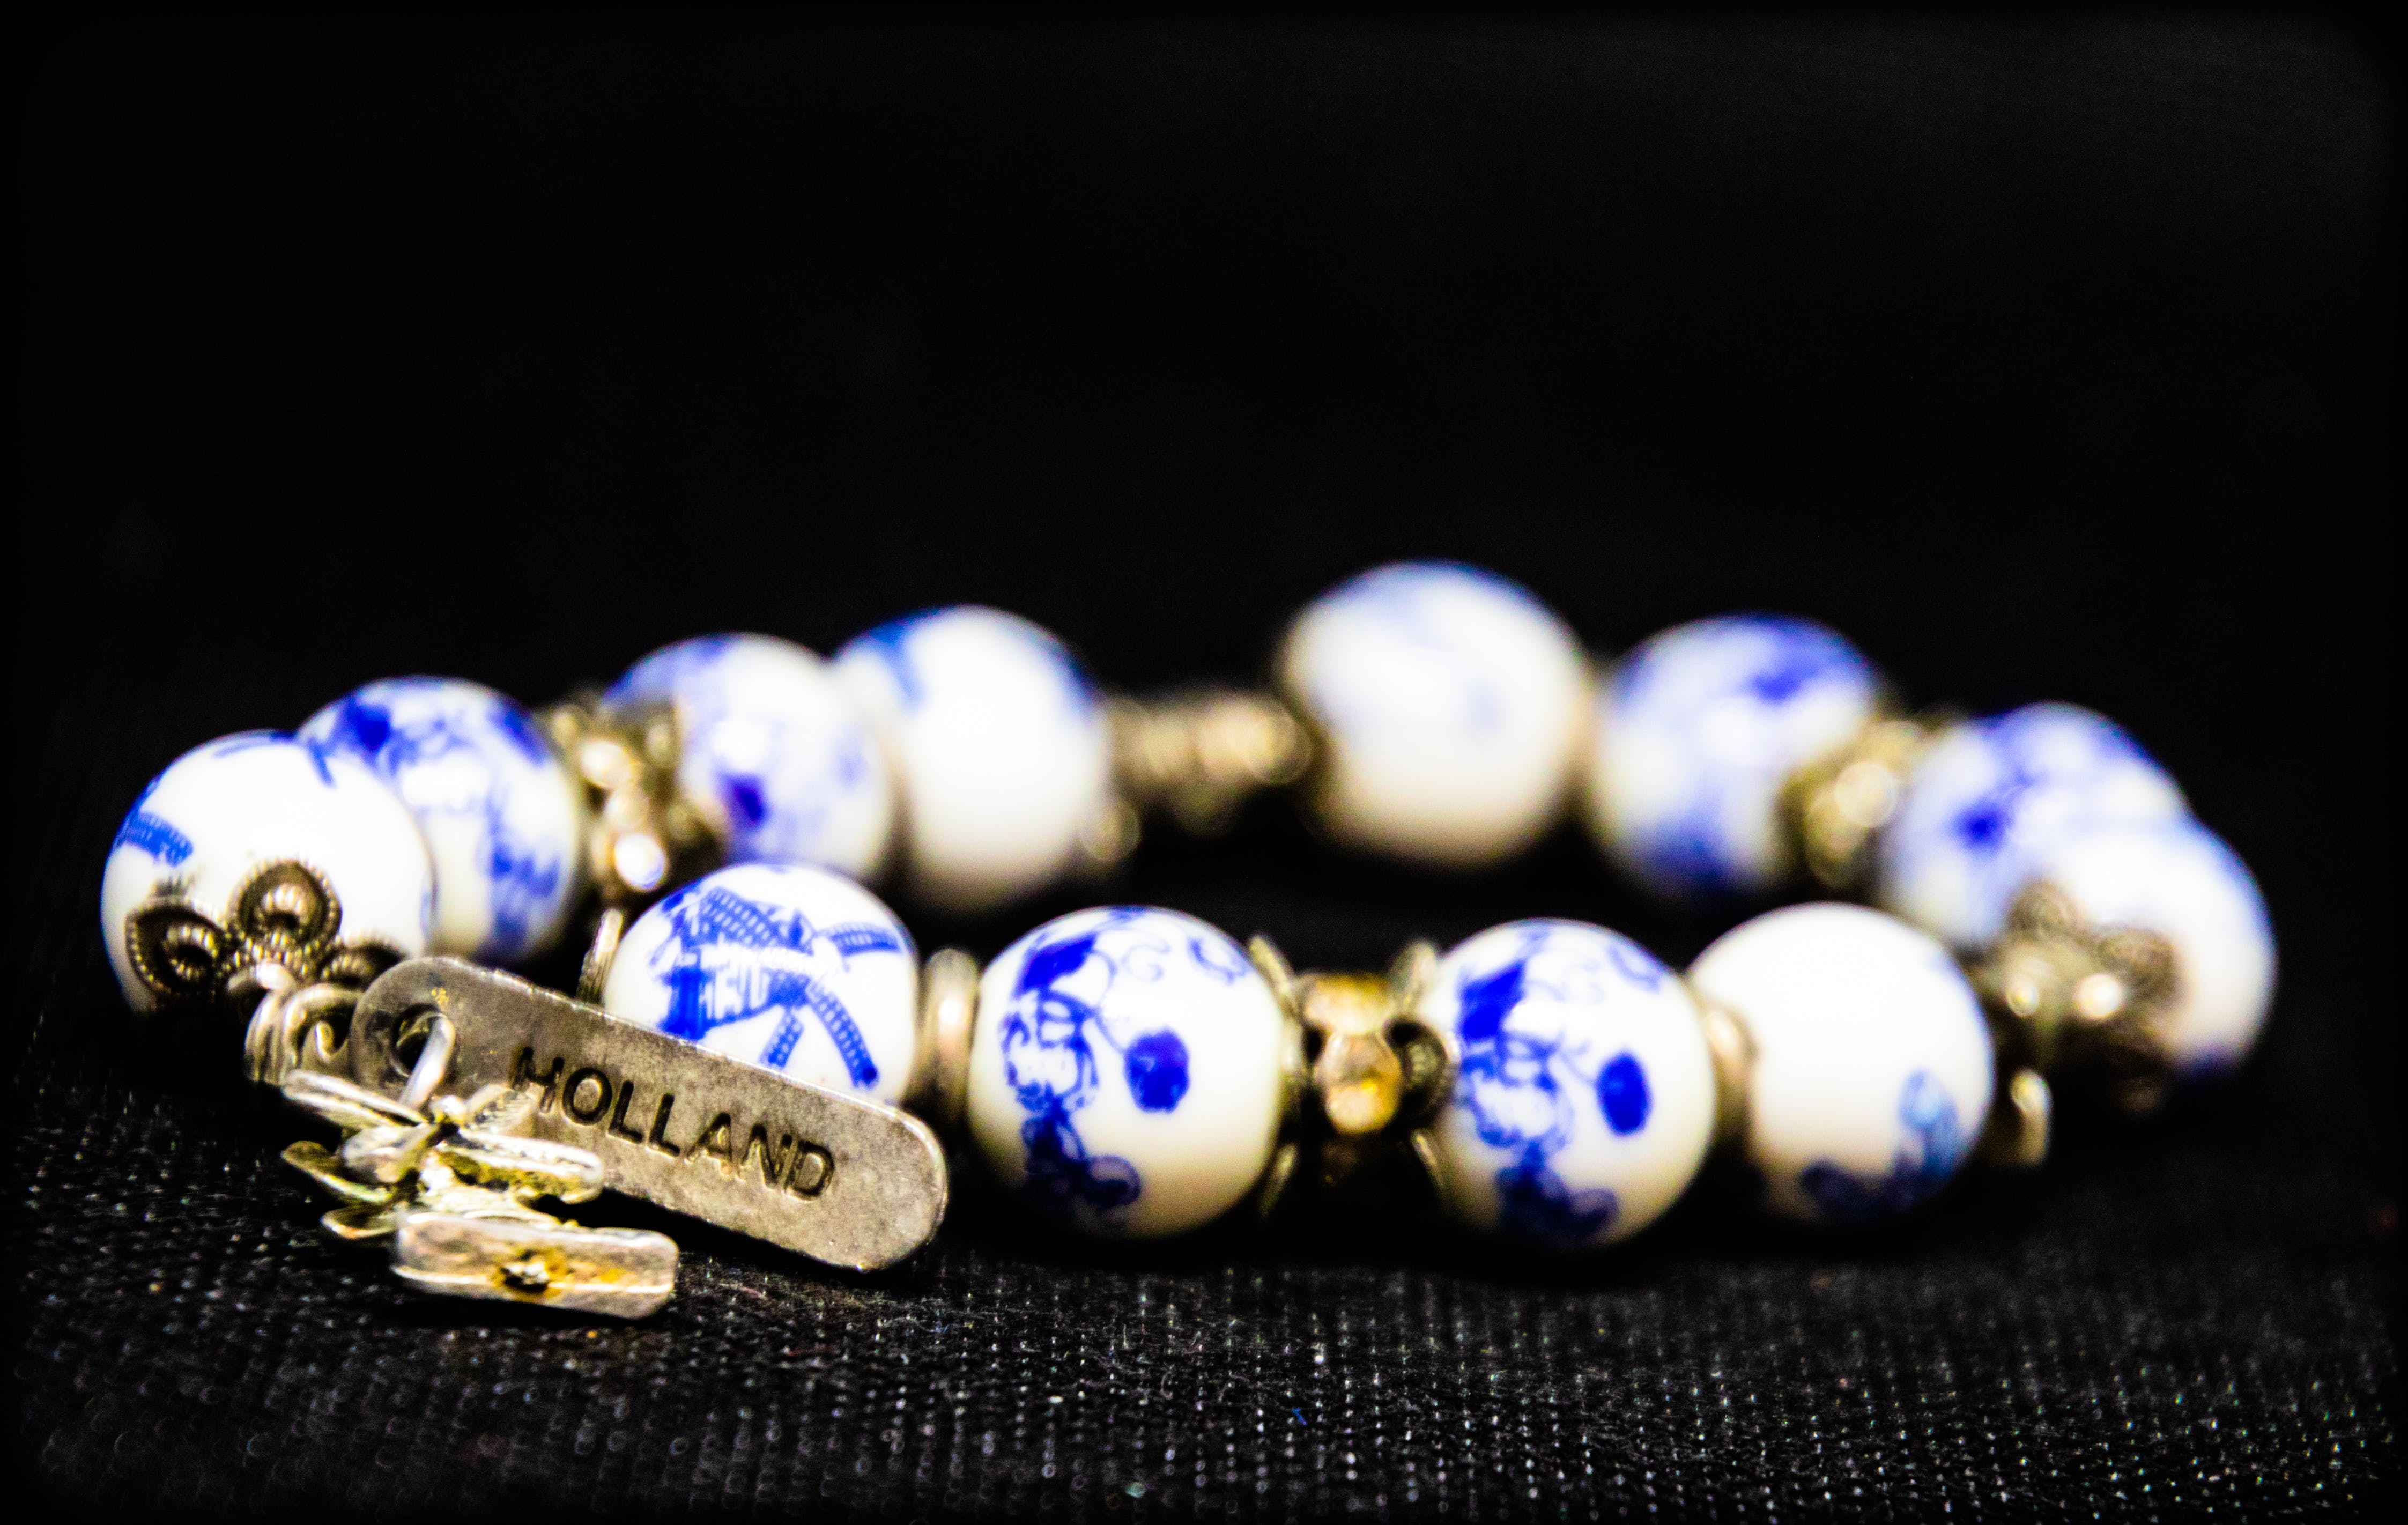 Free stock photo of bangle, blue and white, Holland, jewellery